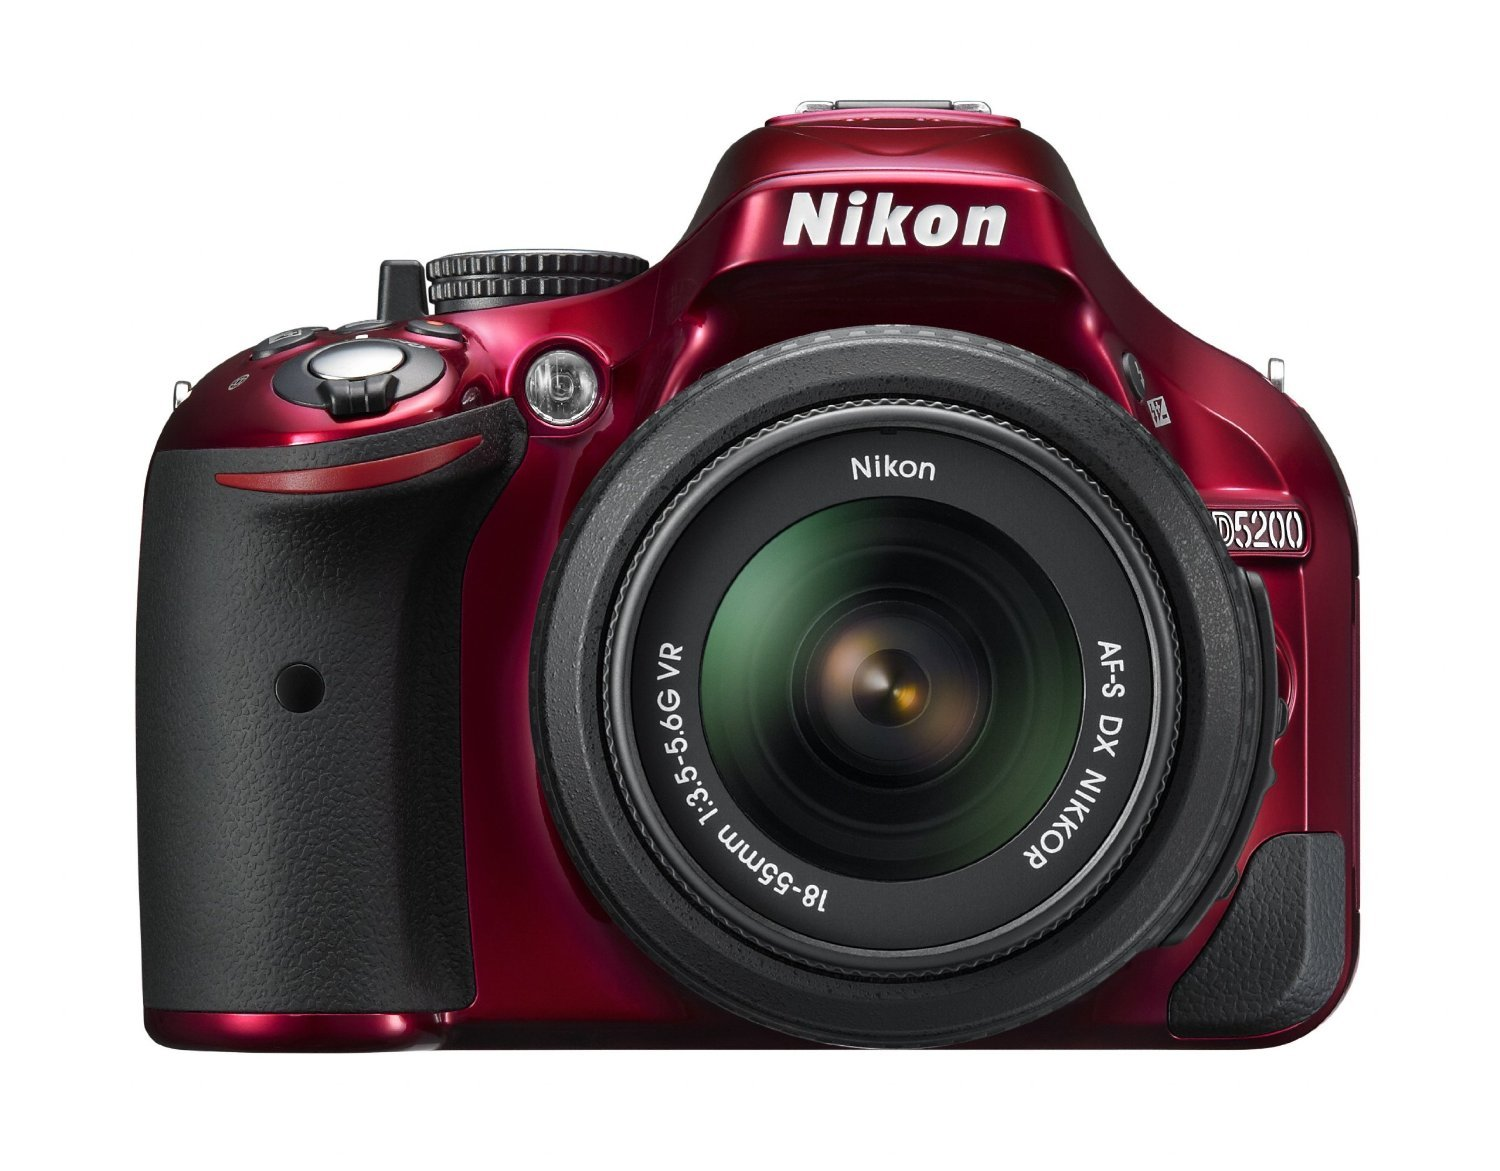 Nikon D5200 CMOS DSLR with 18-55mm f/3.5-5.6 AF-S NIKKOR Zoom Lens (Red) (Certified Refurbished)